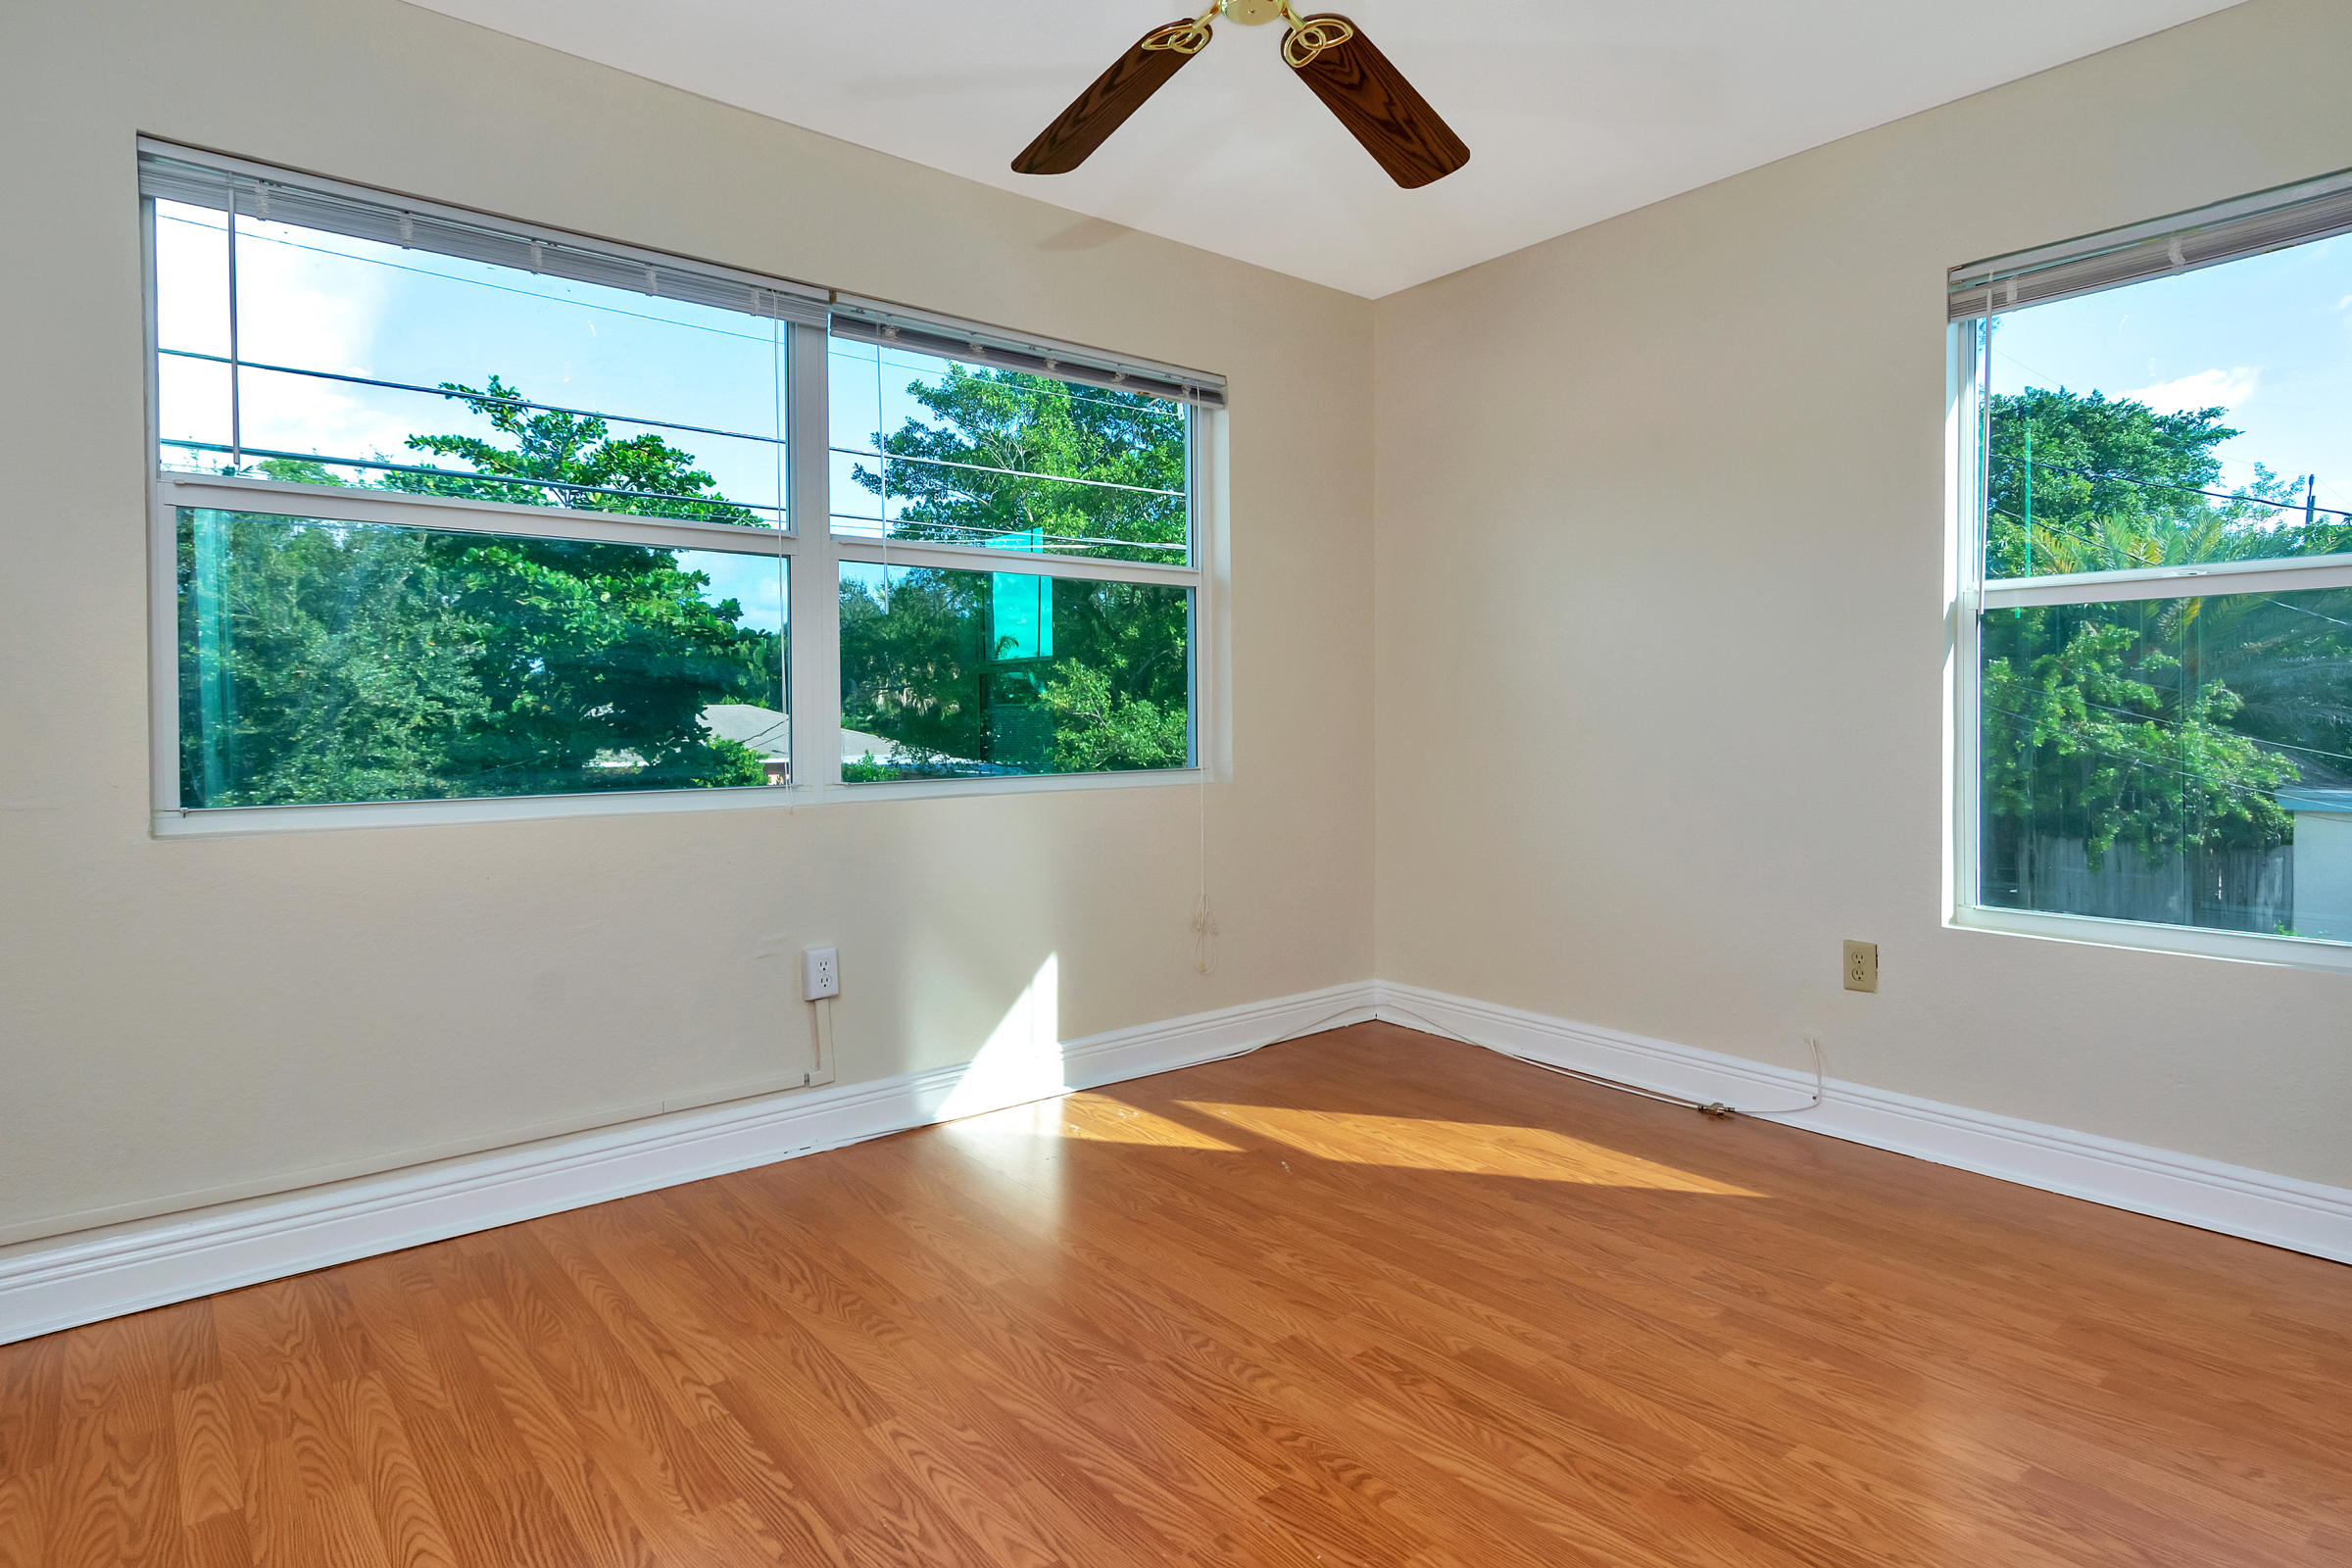 707  6th Avenue 1101,  FL 33460 is listed for sale as MLS Listing RX-10574418 photo #22